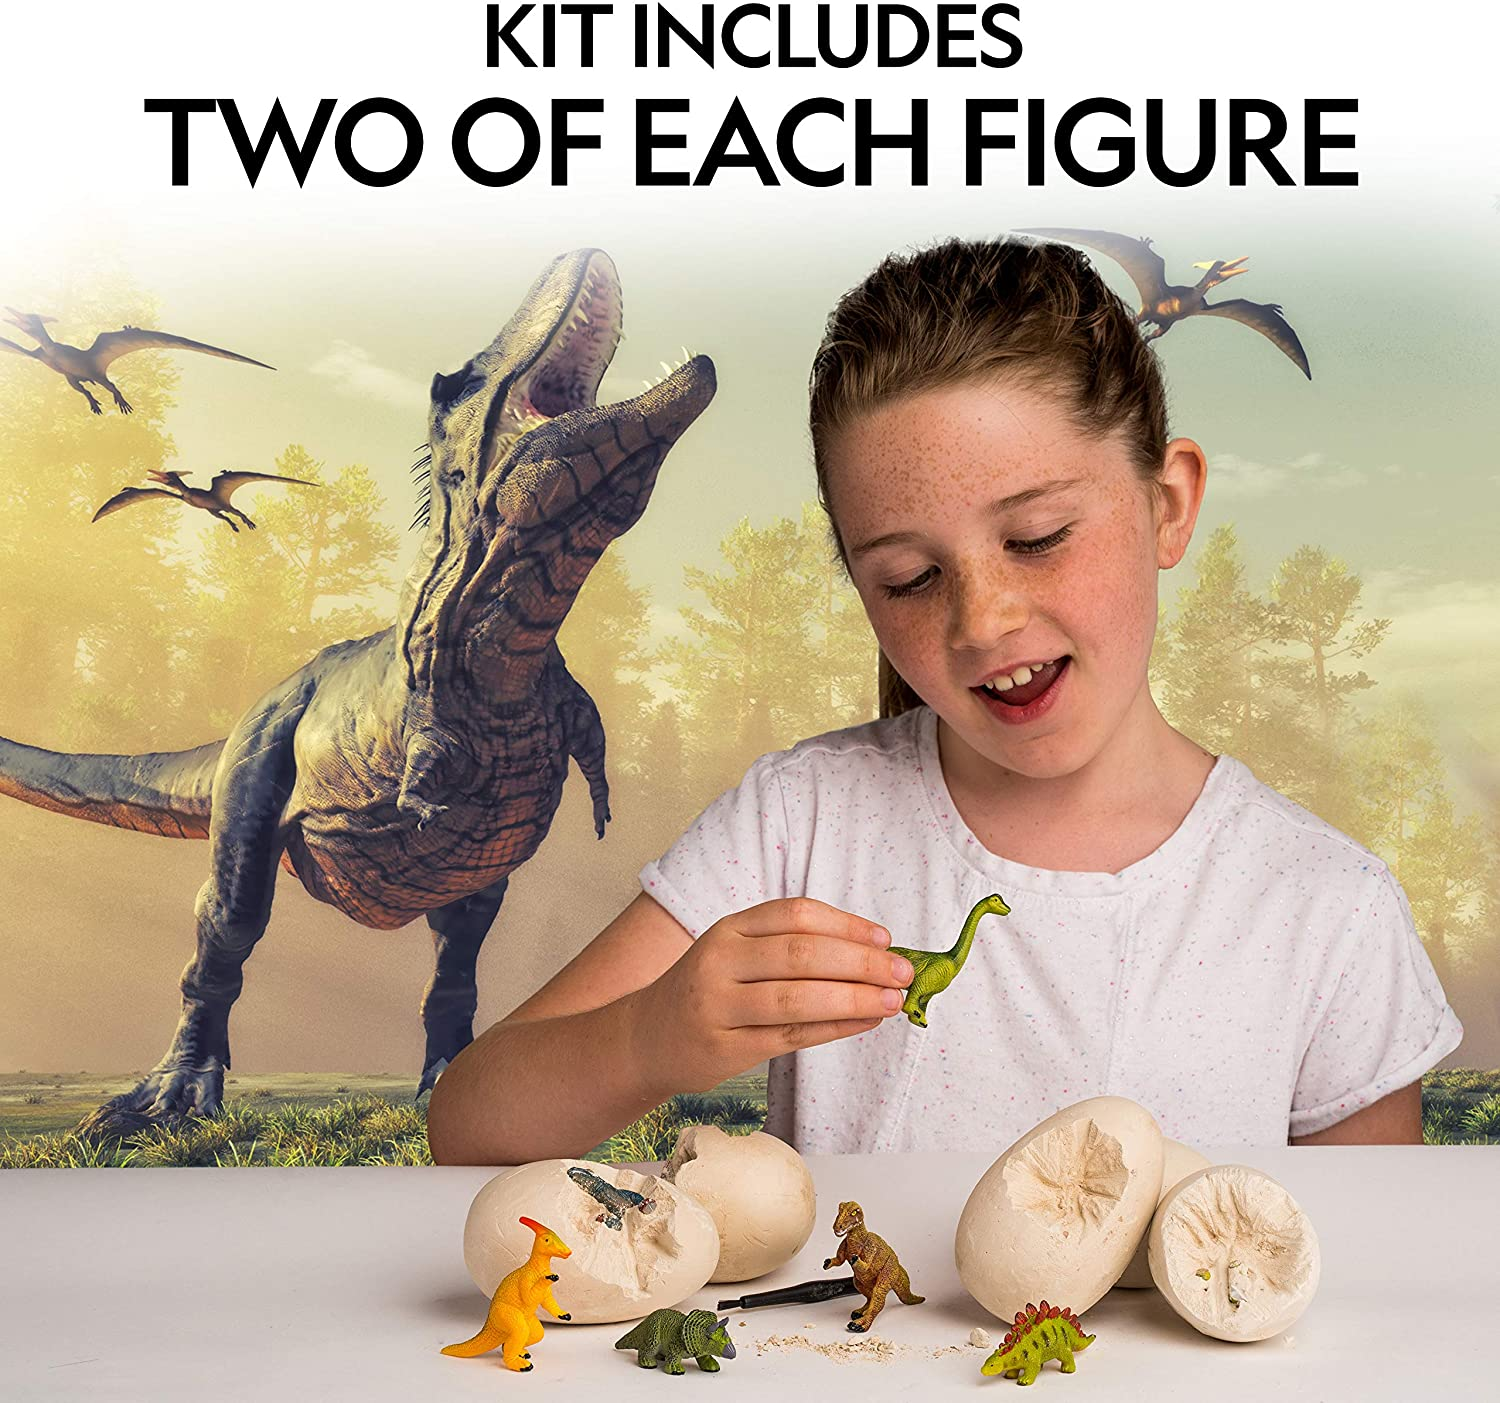 Perfect Activity for Egg Hunt Or Dig Party 12 Excavation Tool Sets 12 Dino Shaped Dig Bricks with Dinosaur Figures Inside National Geographic Dinosaur Dig Kit Great STEM Toy for Boys and Girls